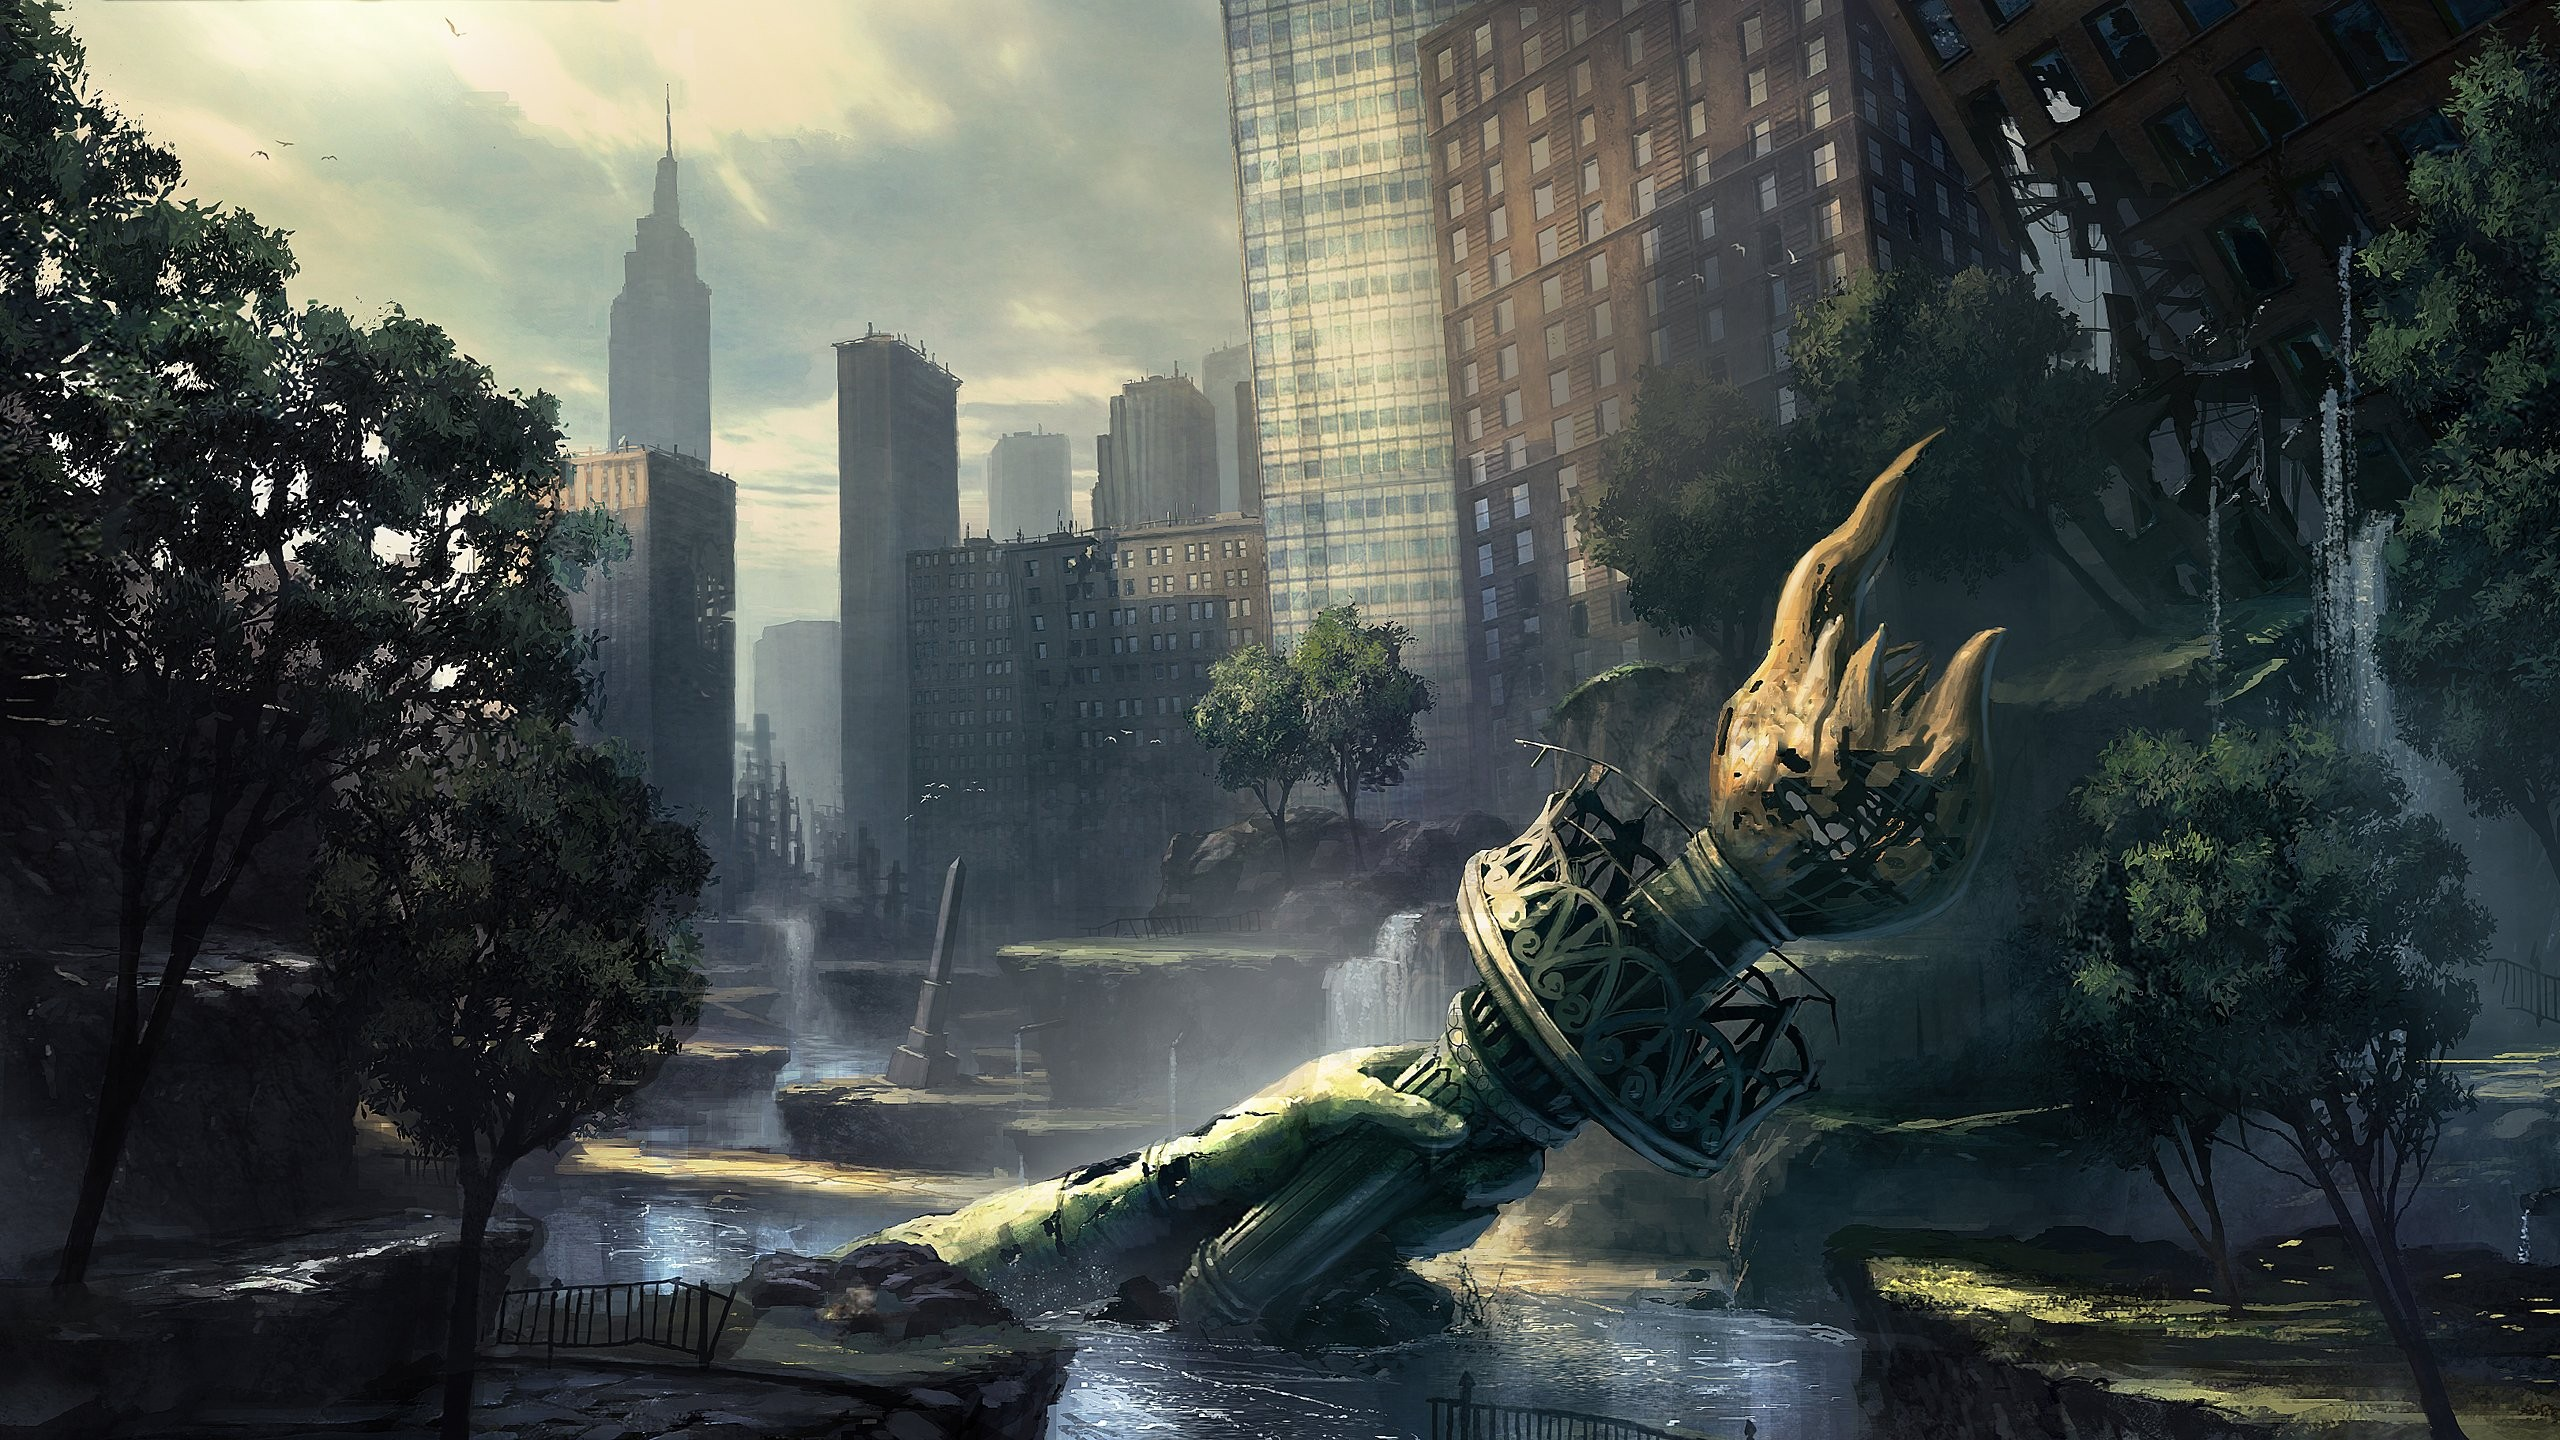 Video Games Wallpaper 2560x1440 Video Games Ruins New York City 2560x1440